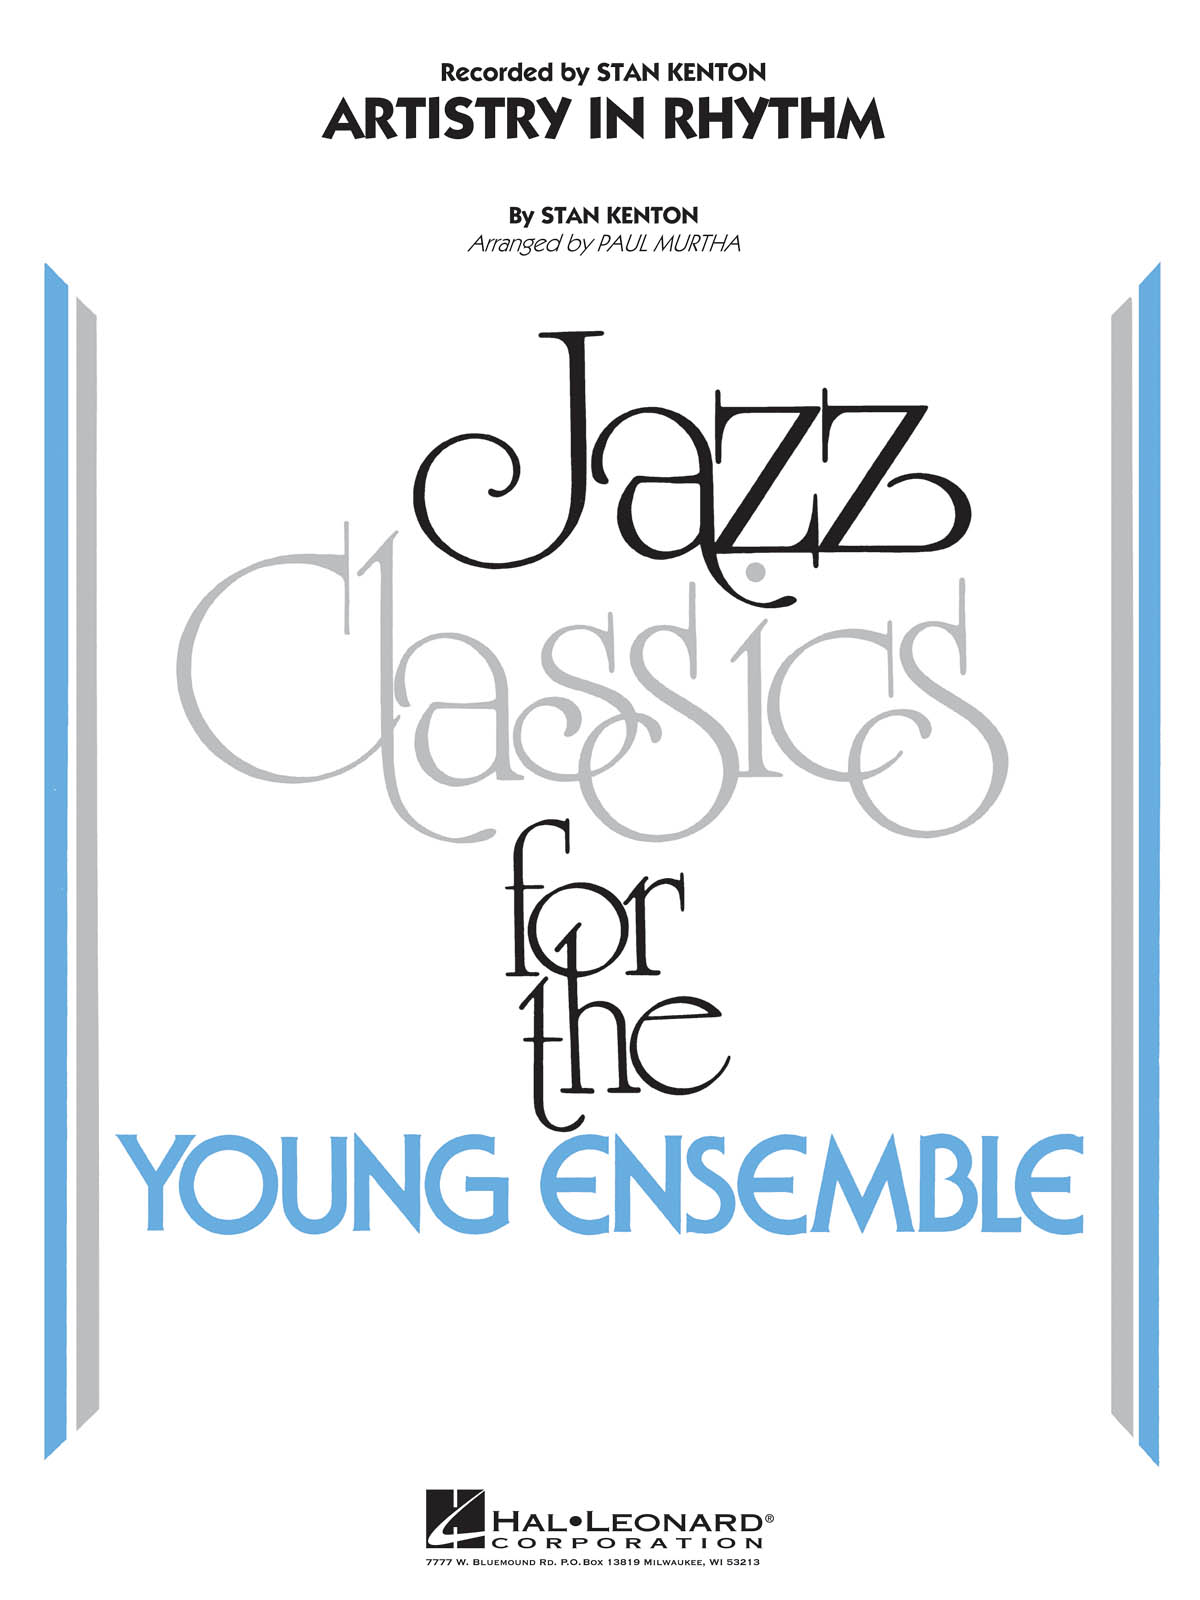 Artistry in Rhythm: Jazz Classics for the Young Ensemble